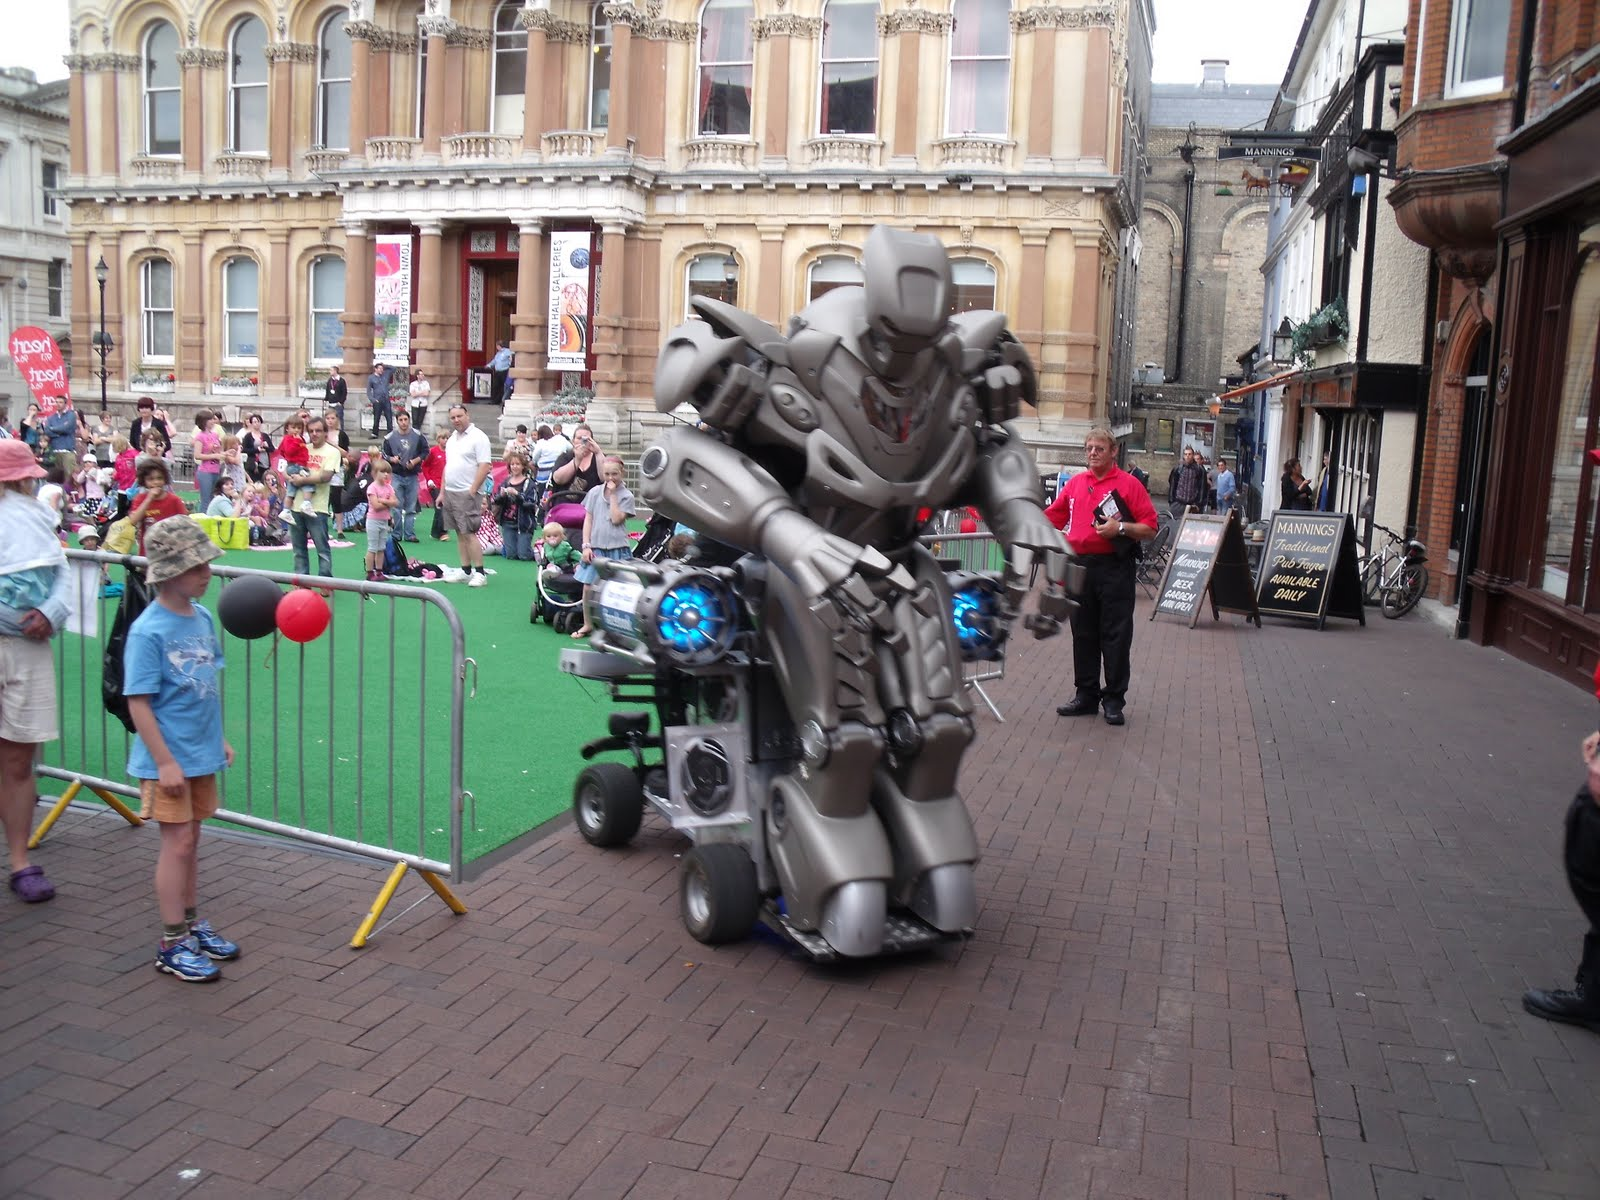 Titan The Robot  Band, Comedian, Dance Troup, Dancer, Other, Performer, Singer Newquay, Cornwall, England